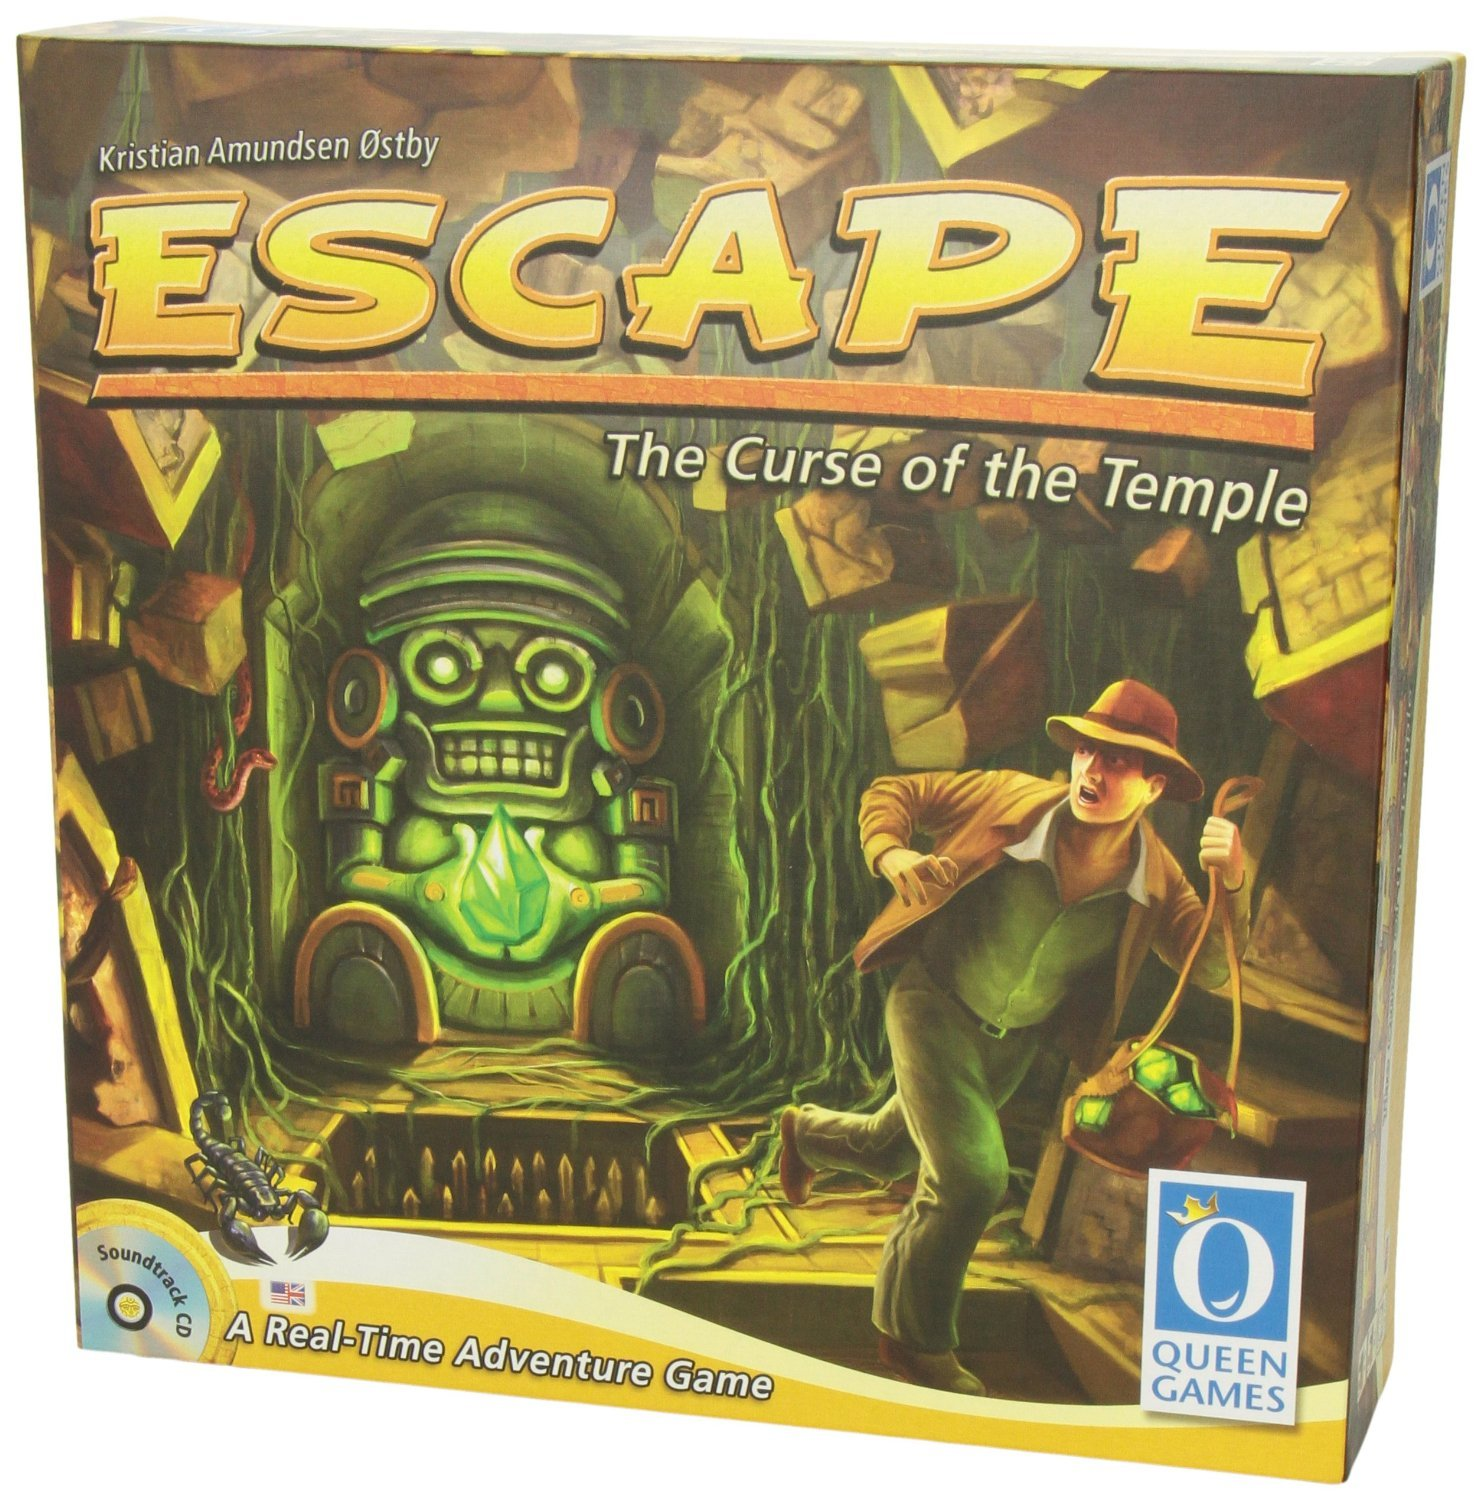 Queen Games 60903 - Escape: The Curse of the Temple